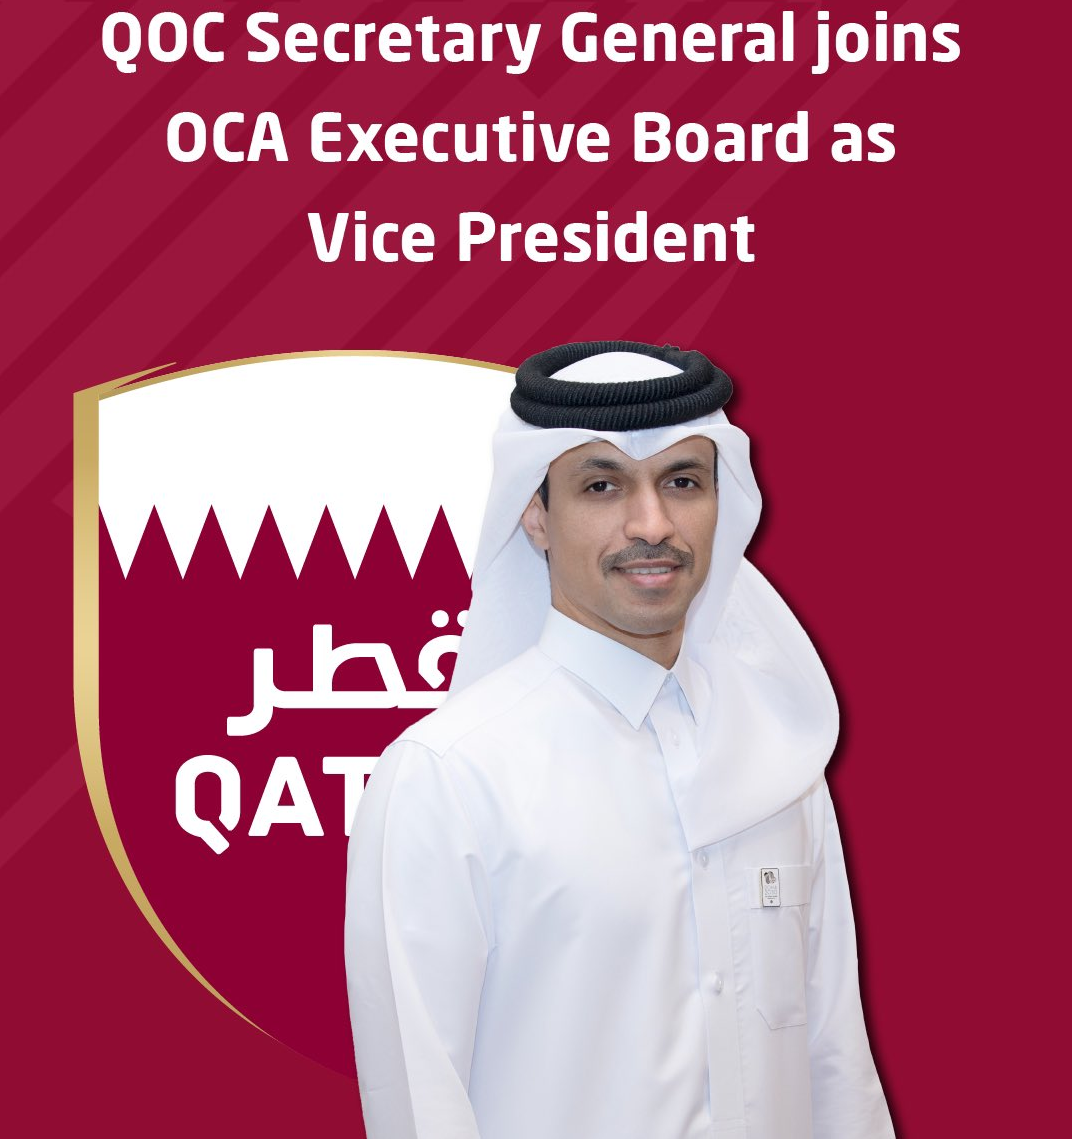 QOC secretary general joins OCA Executive Board after Doha awarded 2030 Asian Games